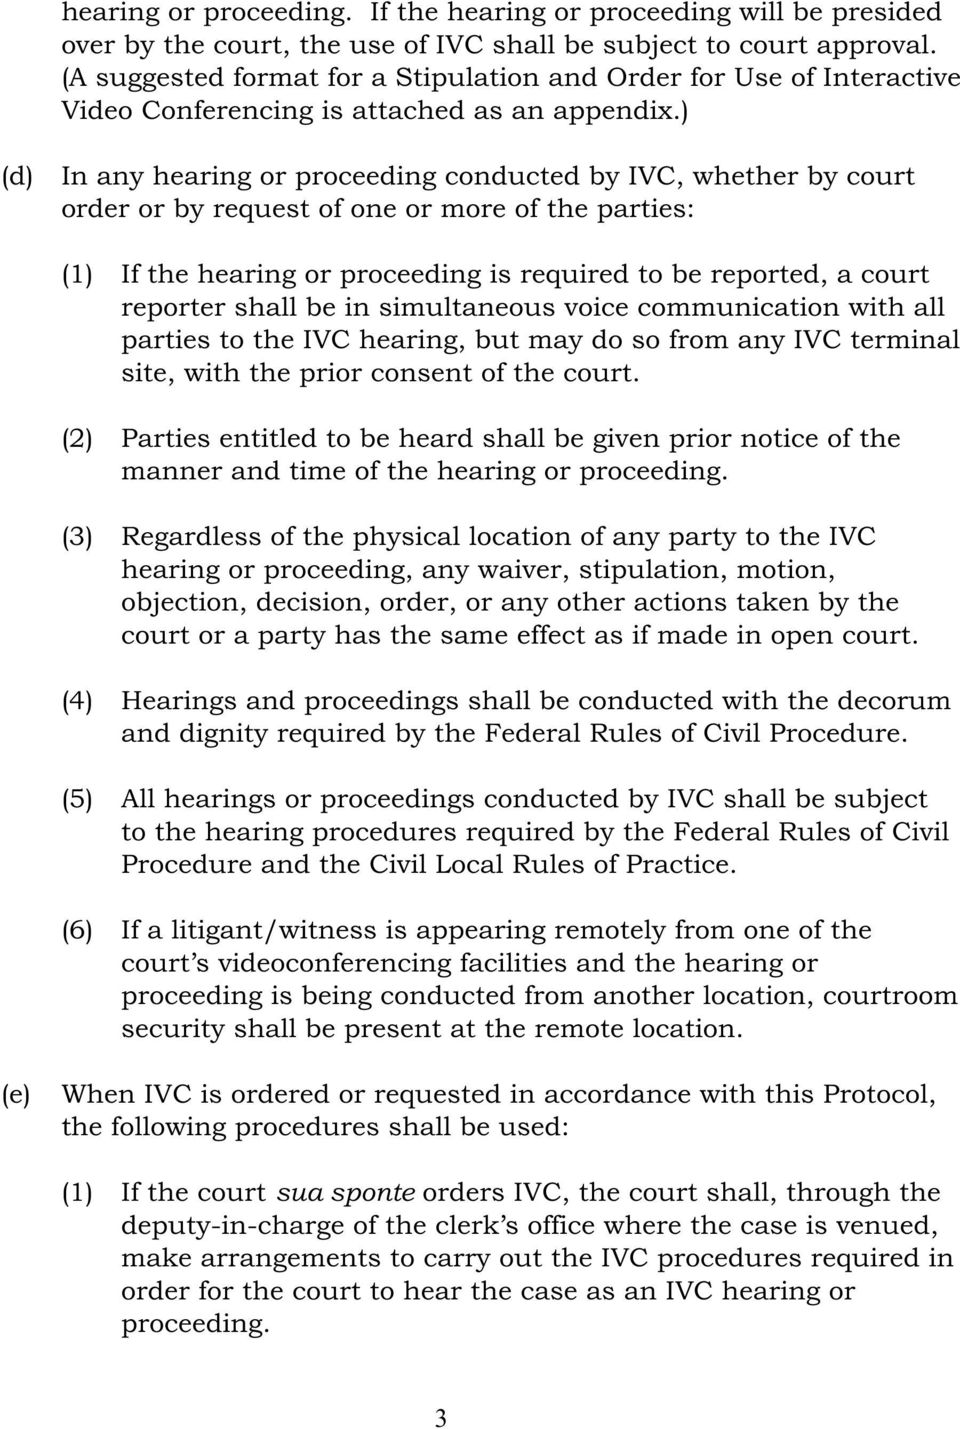 (d In any hearing or proceeding conducted by IVC, whether by court order or by request of one or more of the parties: (1 If the hearing or proceeding is required to be reported, a court reporter